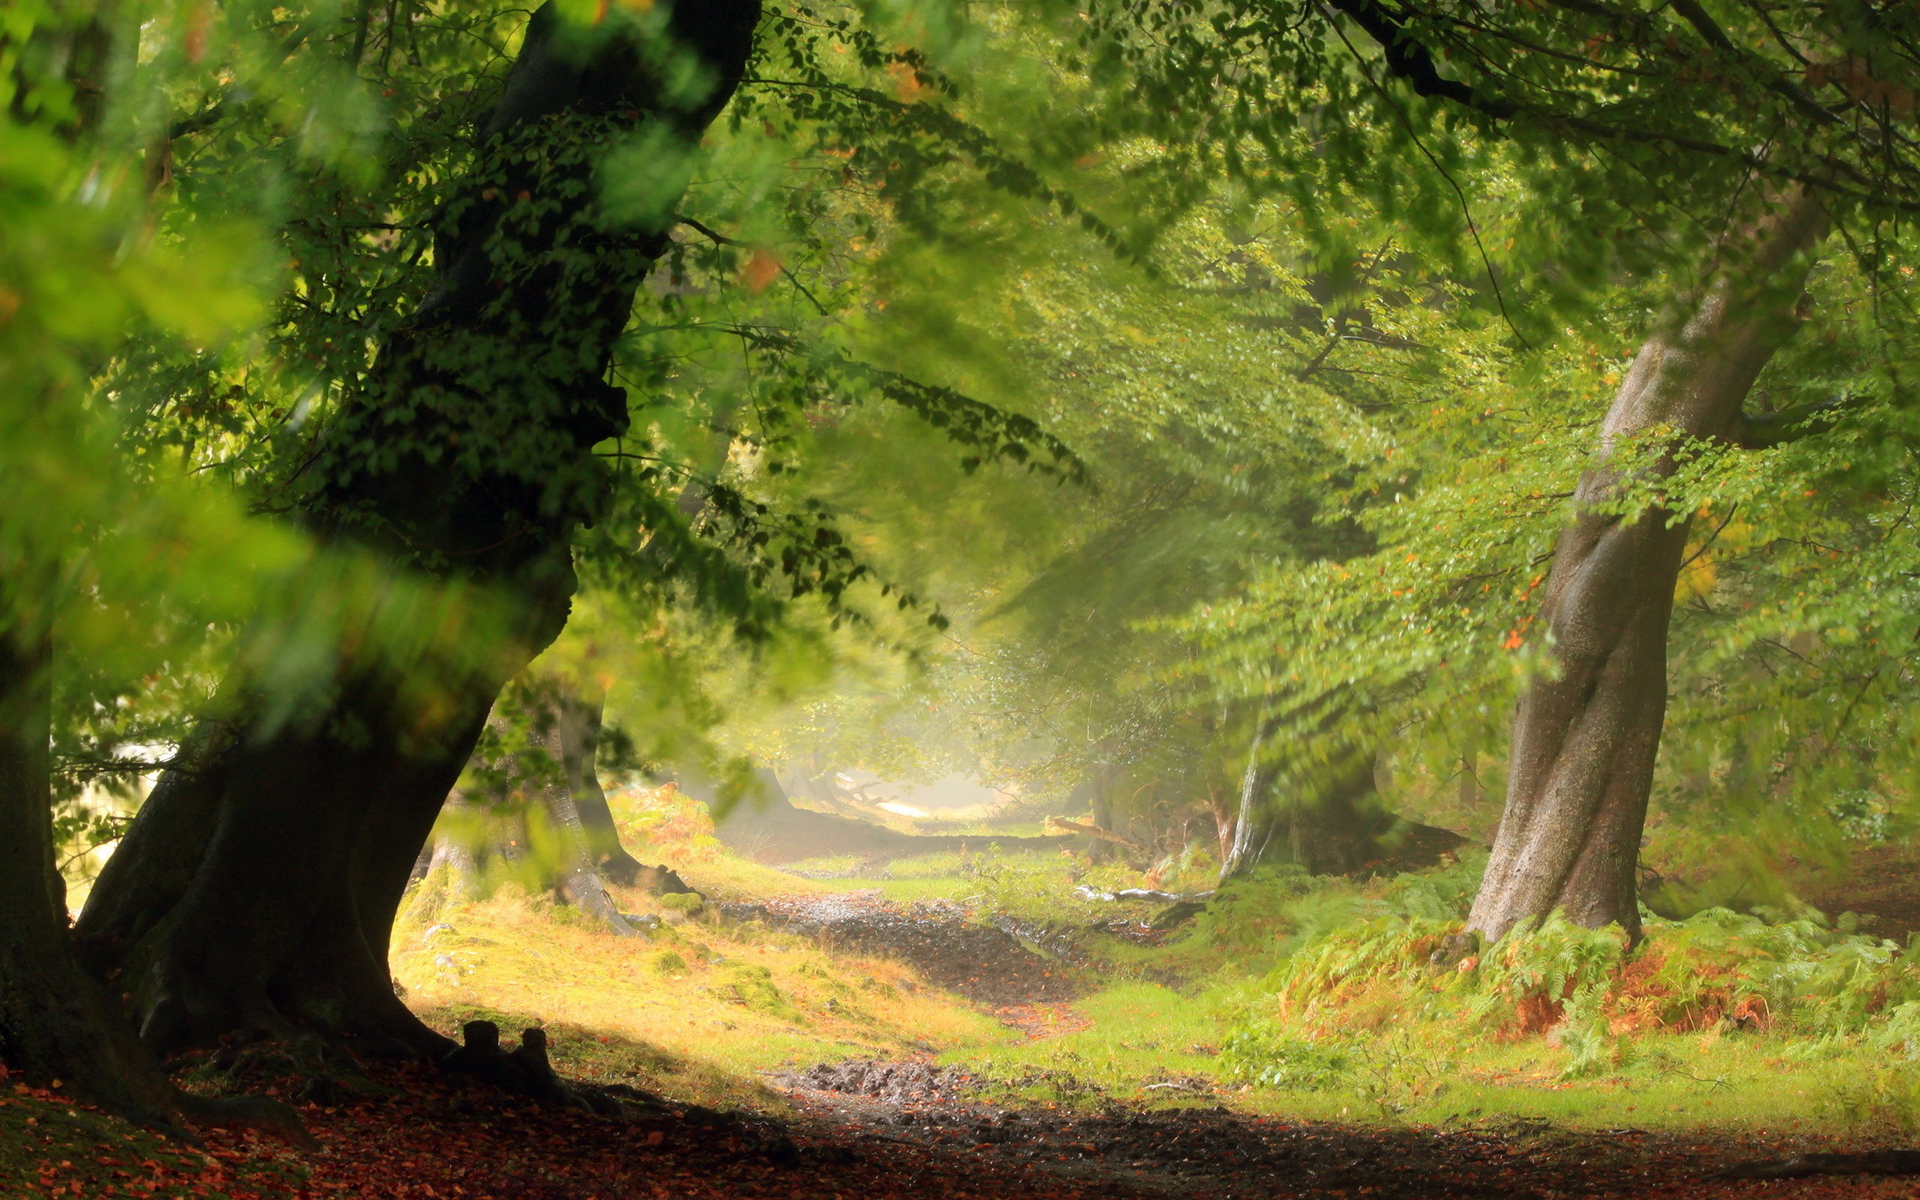 Earth - Forest  - Landscape - Scenic Wallpaper